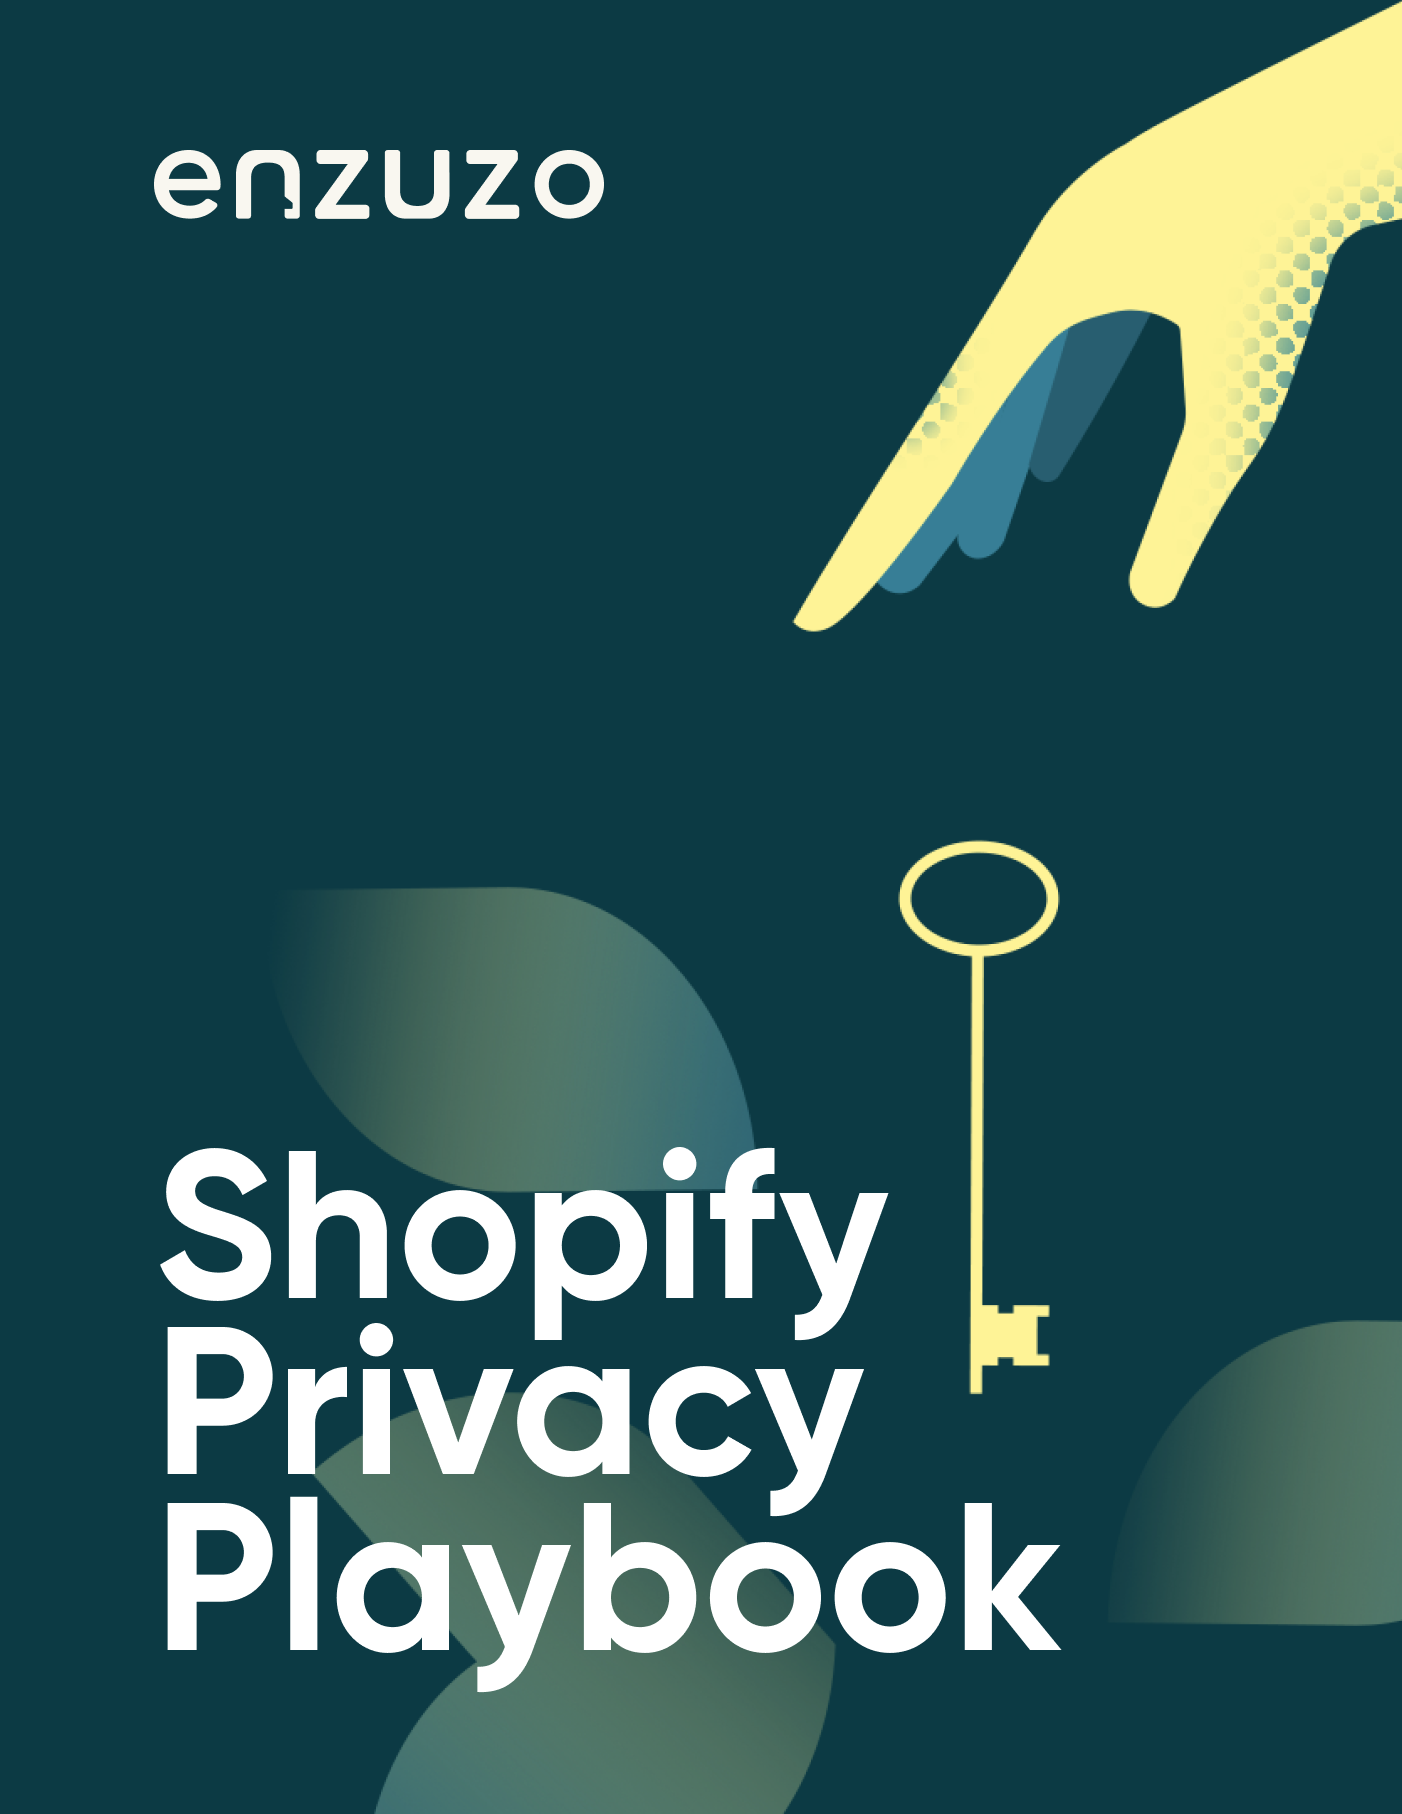 The Shopify Privacy Playbook